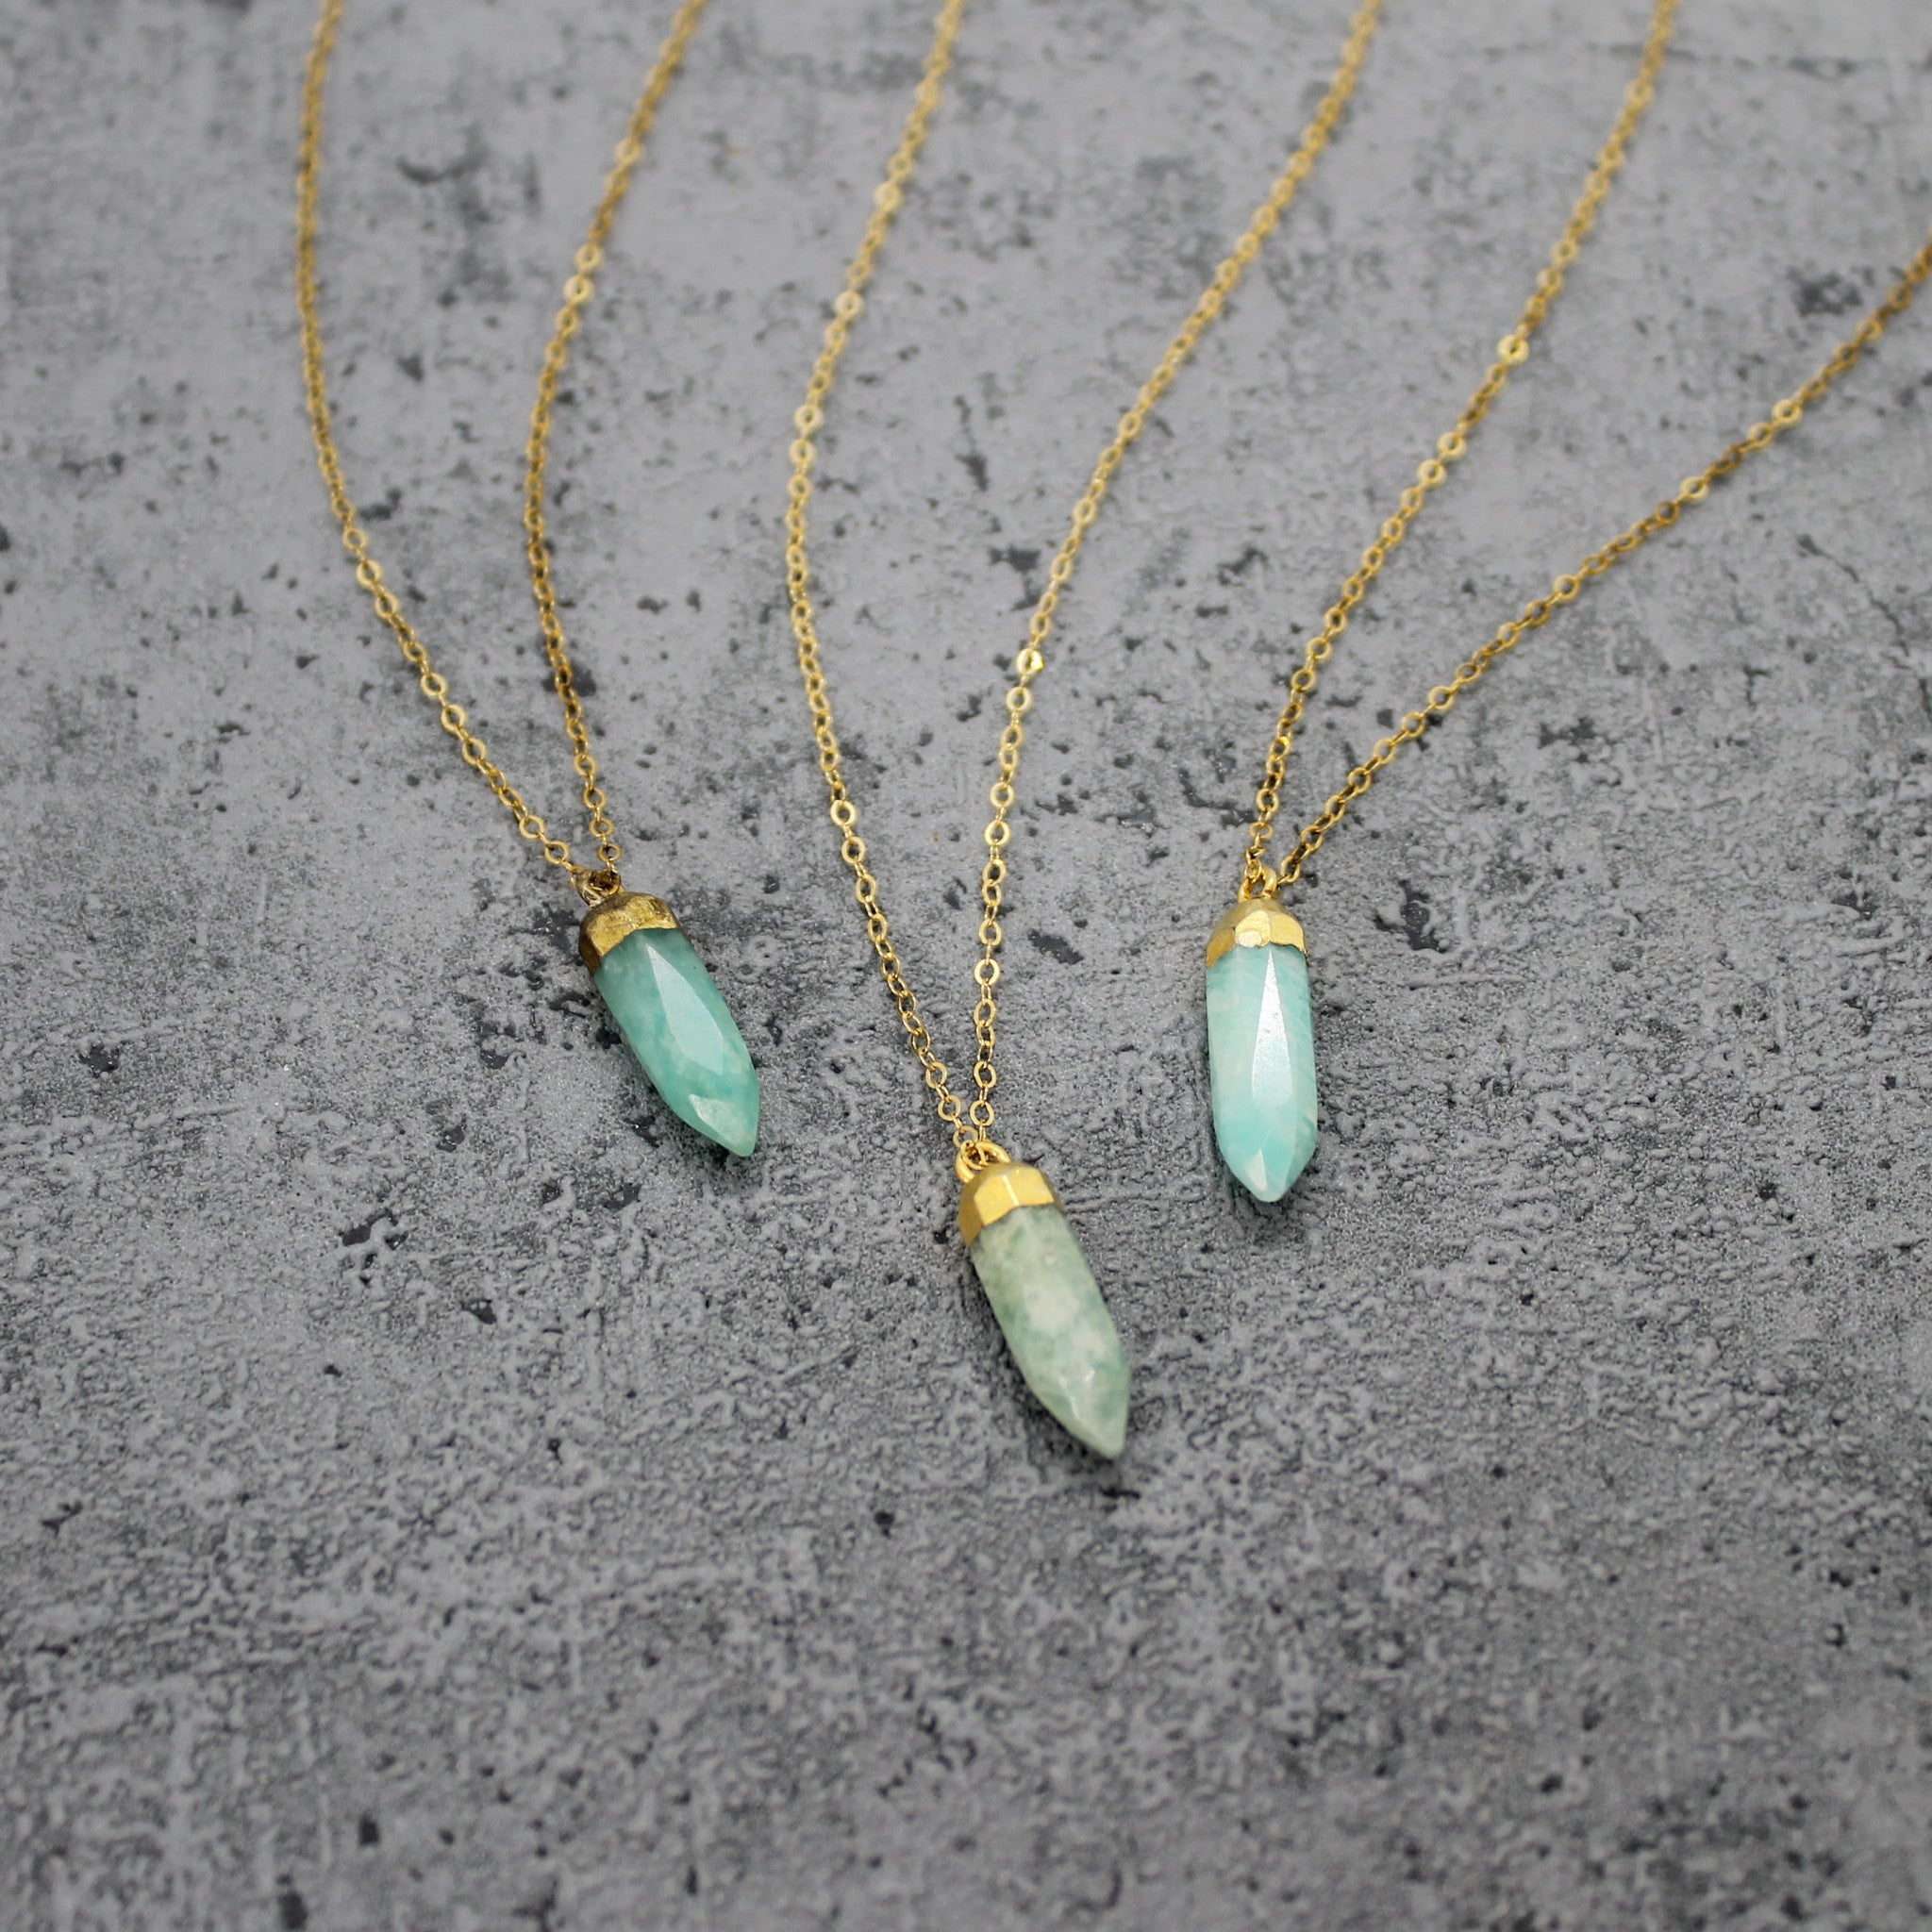 Amazonite stone spike necklace - Mara studio